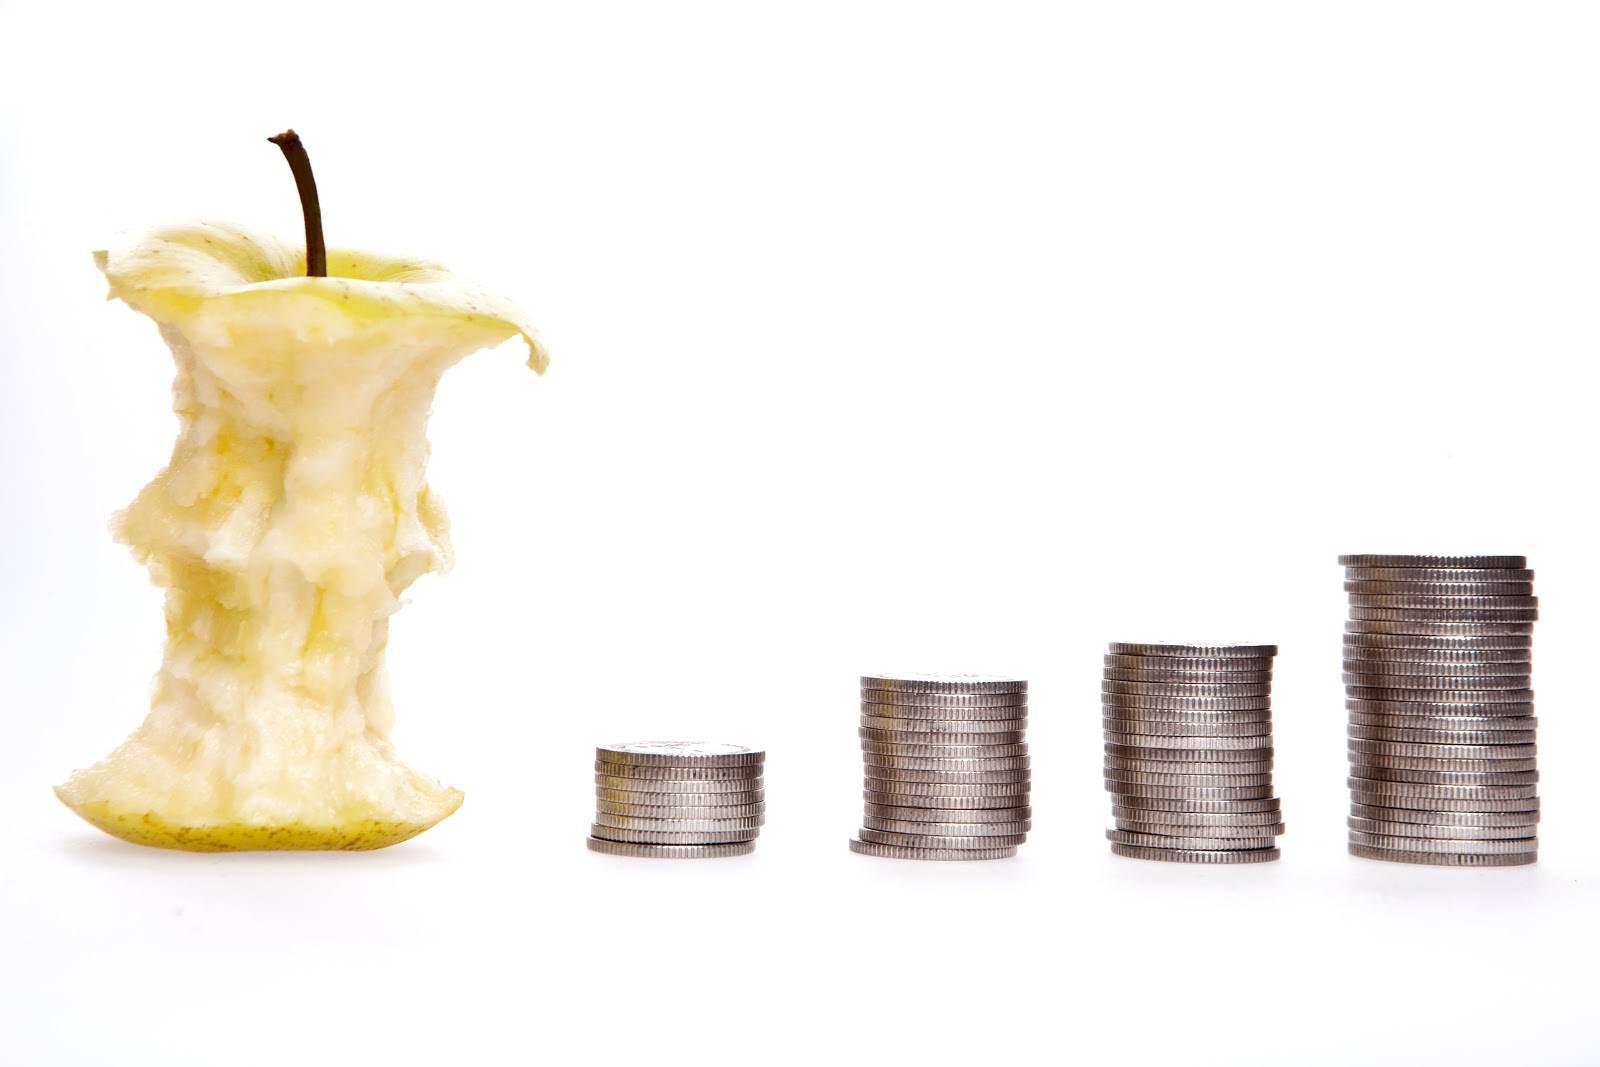 An apple core sits beside four stacks of coins, increasing in height.